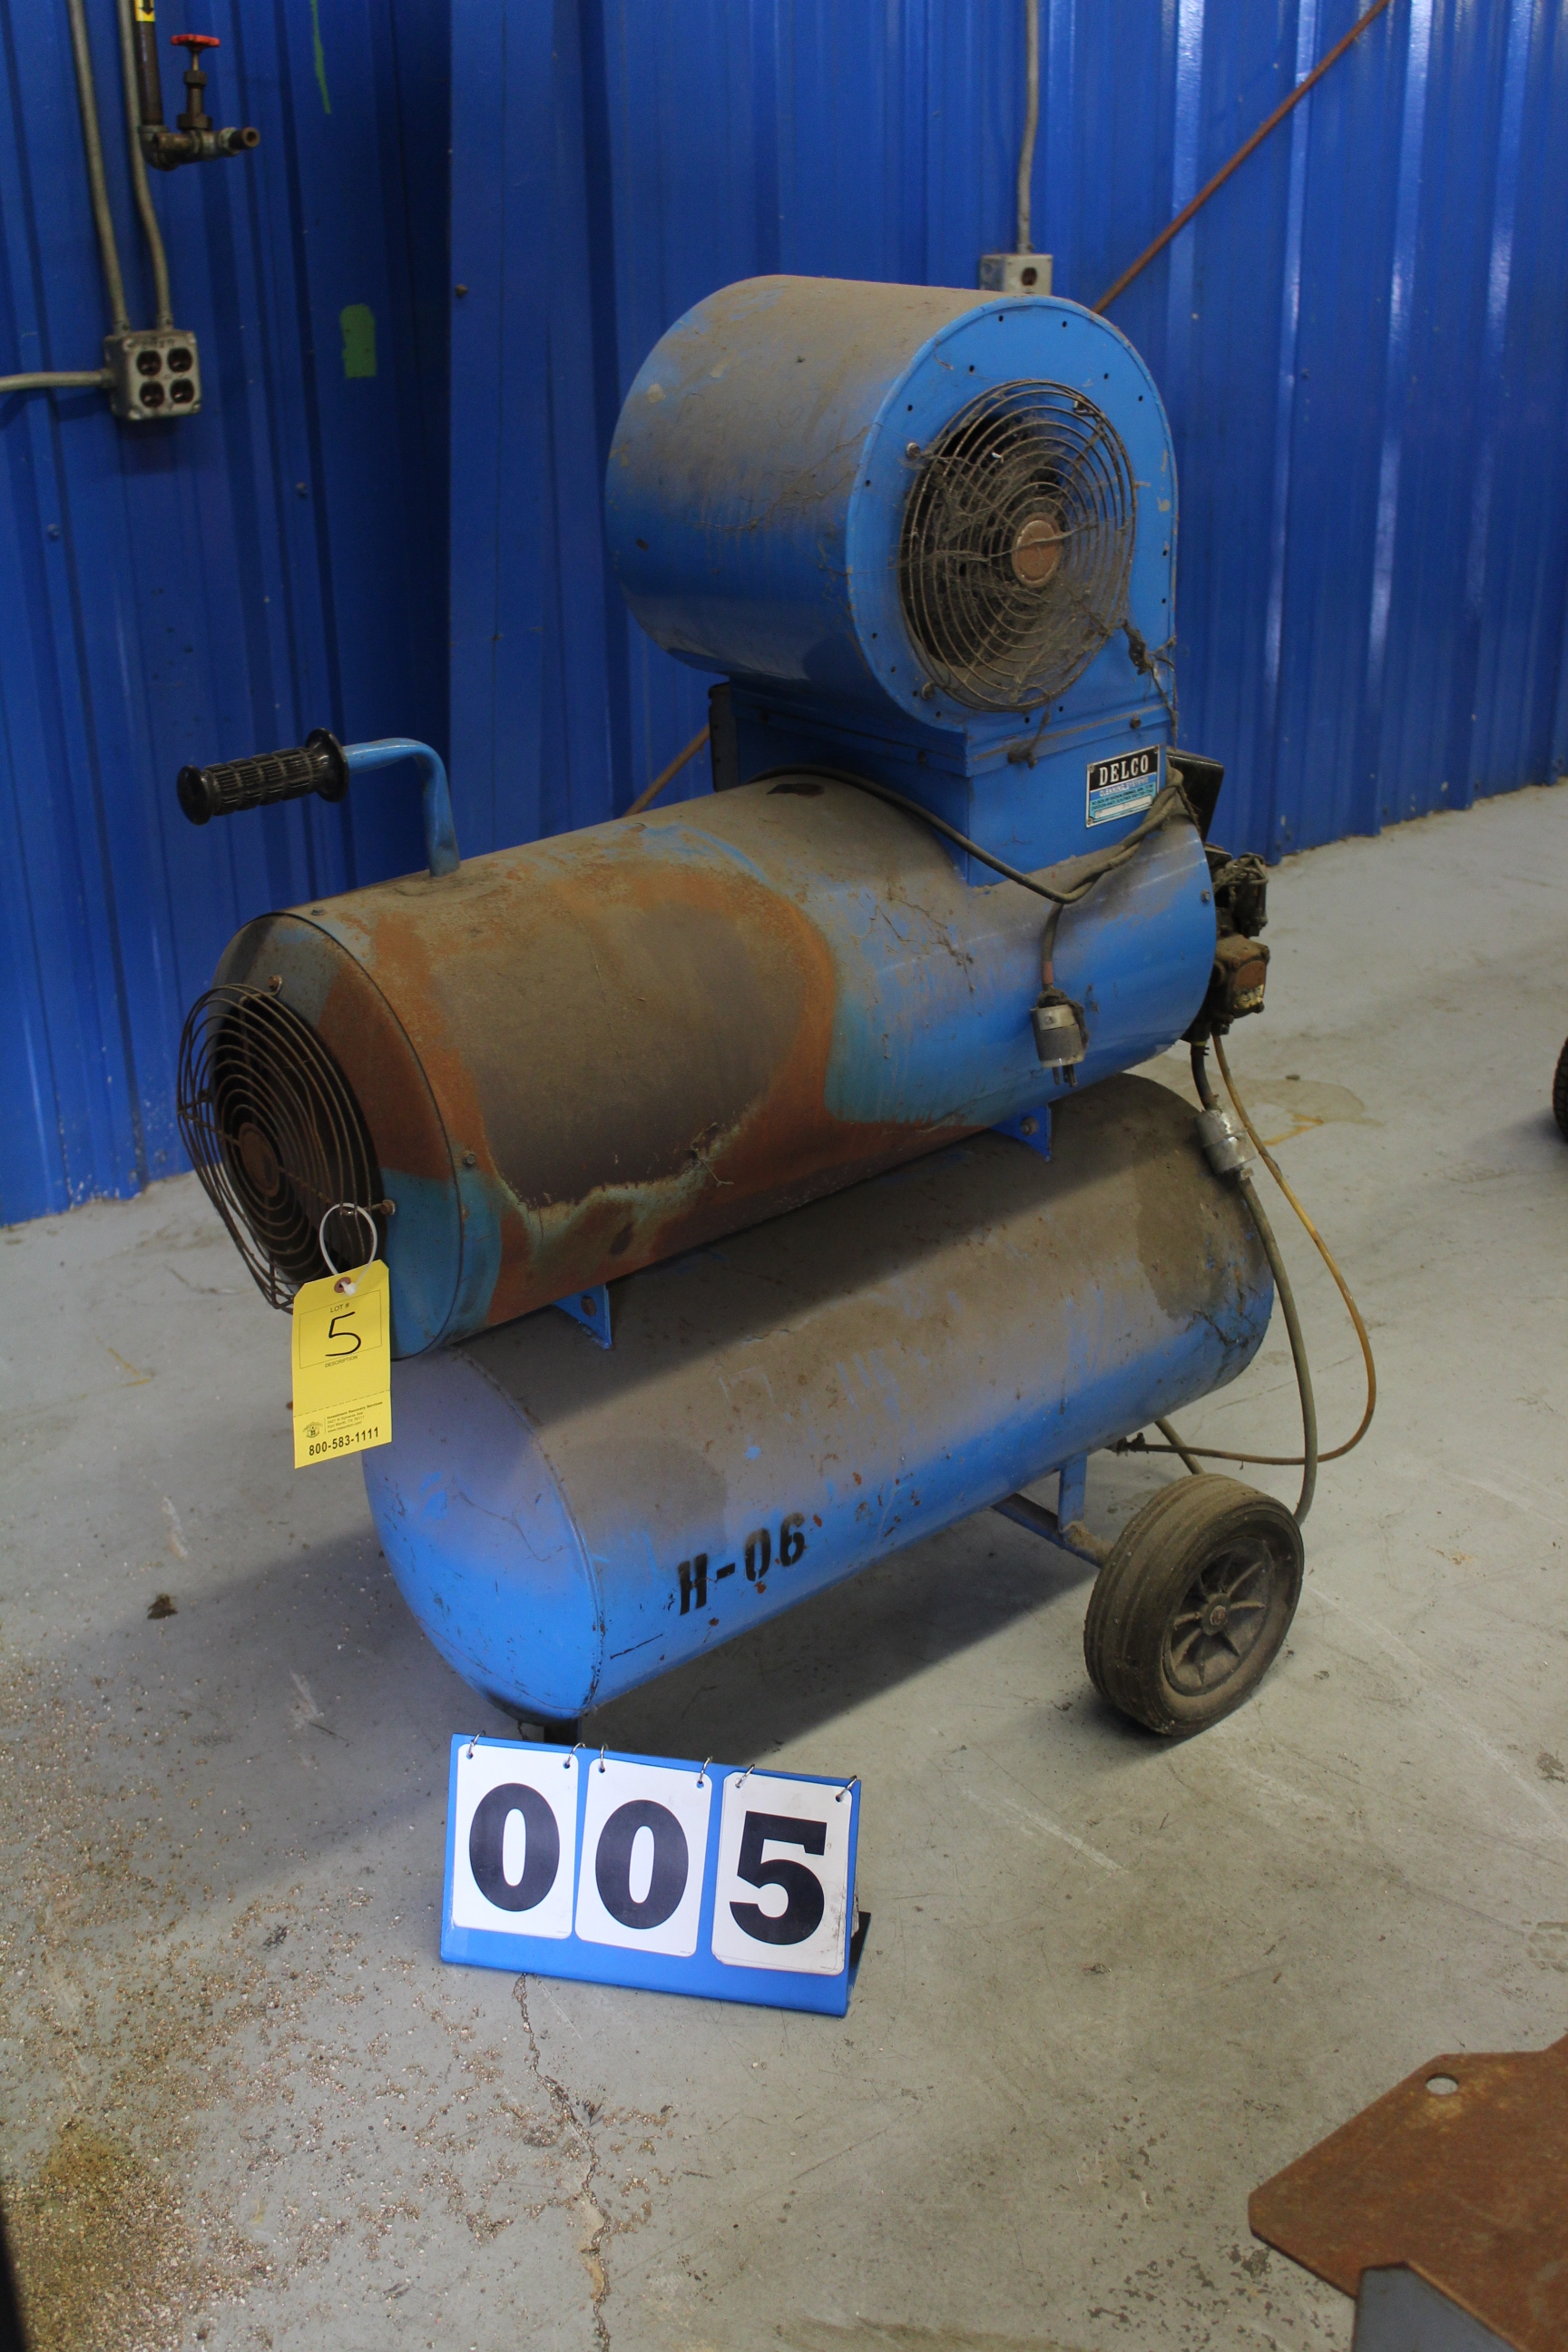 Lot 5 - DELCO CLEANING SYSTEM MDL:000200, PORTABLE